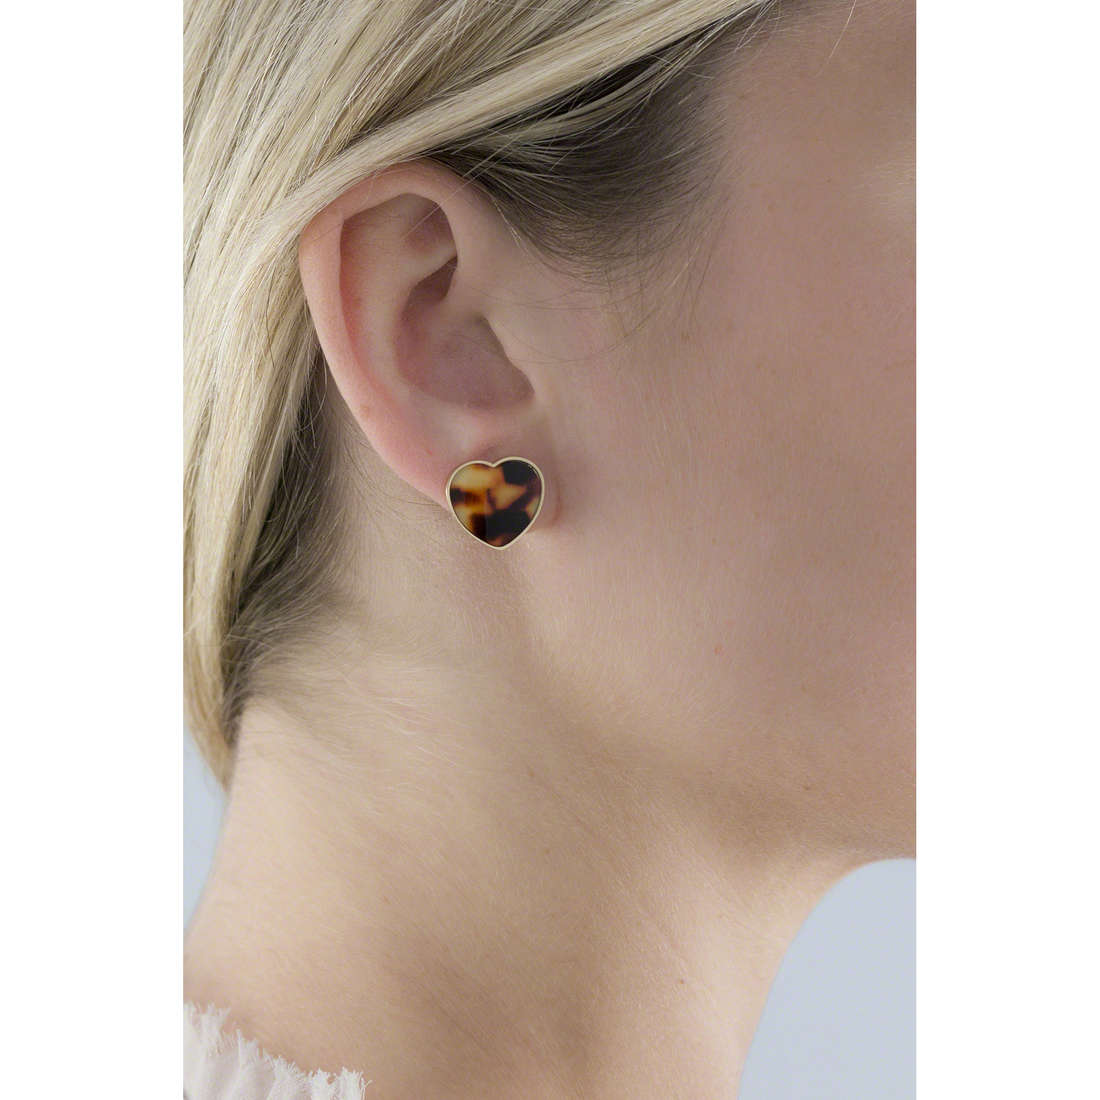 Ops Objects boucles d'oreille Marble femme OPSOR-363 indosso